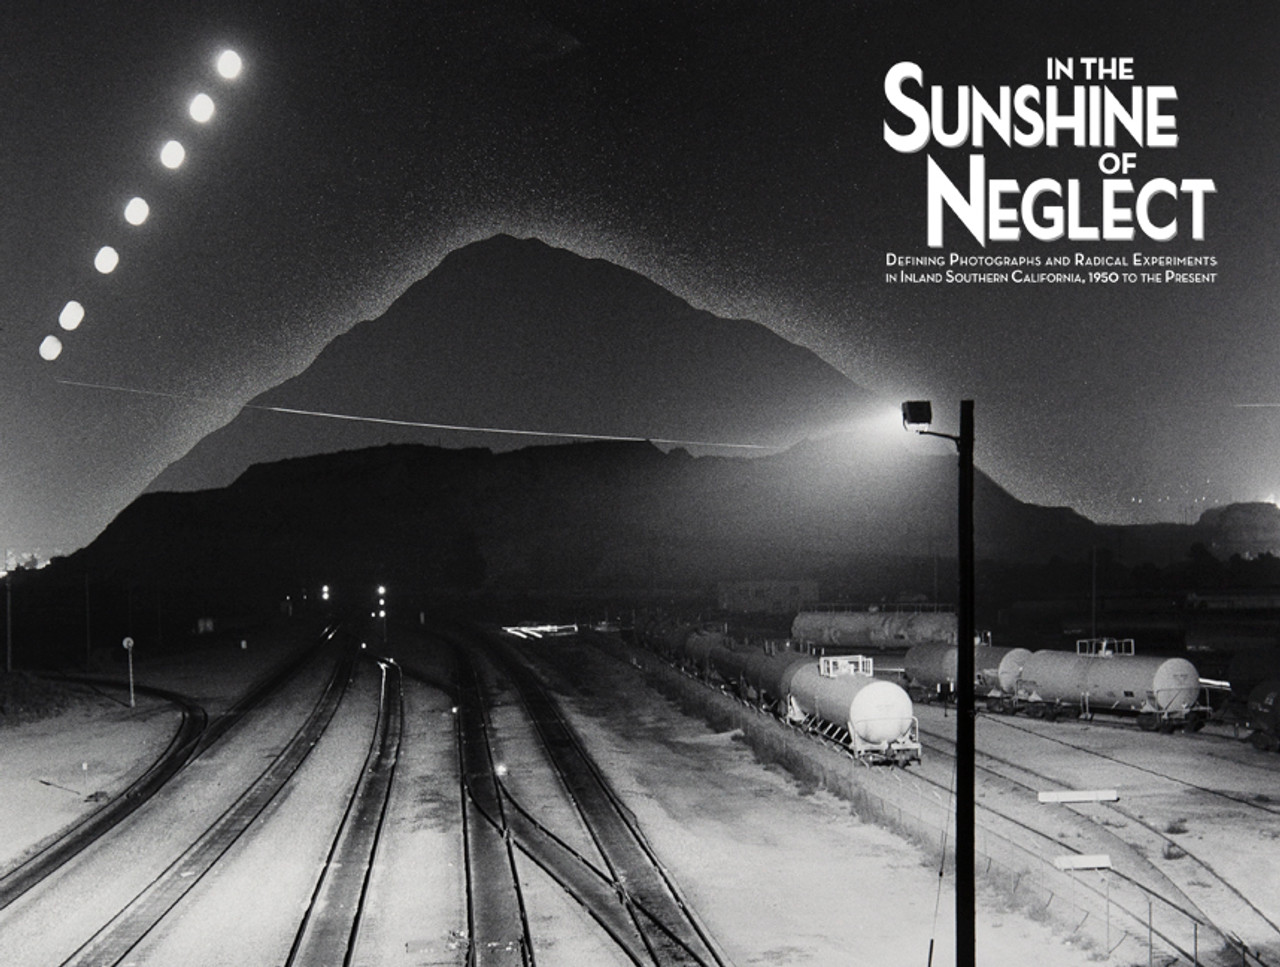 In the Sunshine of Neglect: Defining Photographs and Radical Experiments in Inland Southern California,1950 to the Present